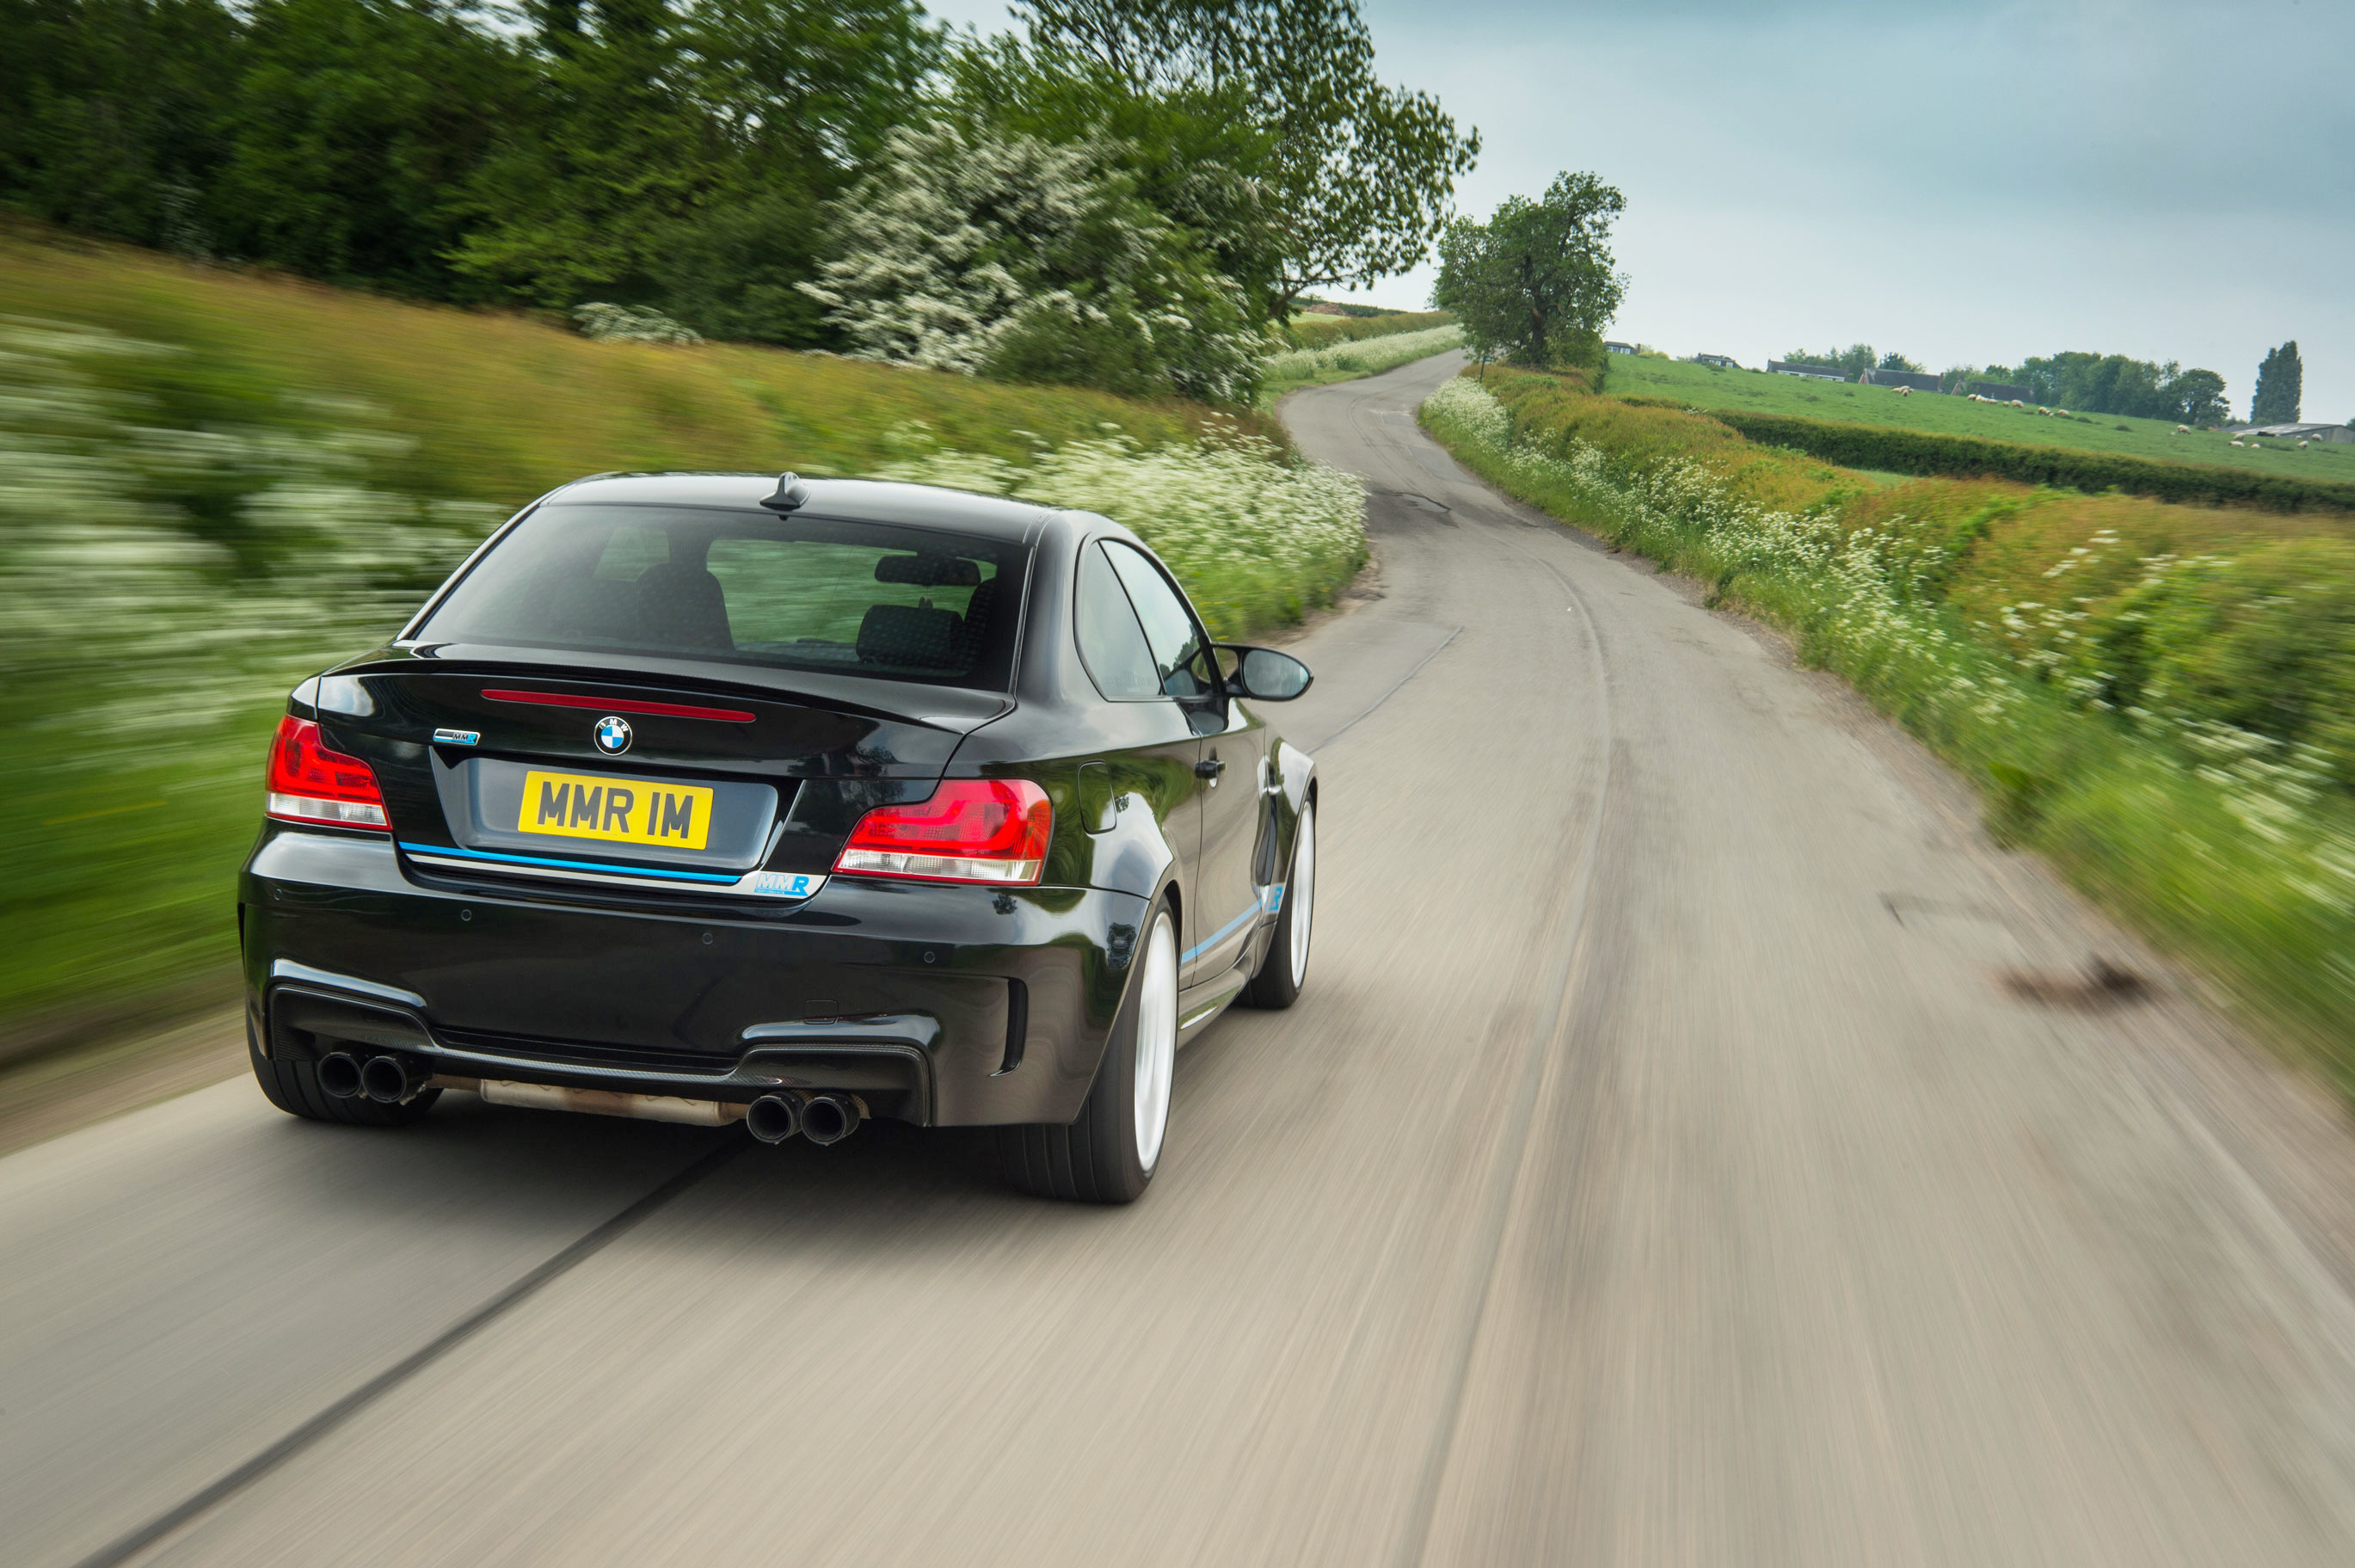 MMR BMW 1M review – 426bhp from tuned 1M coupe | Evo